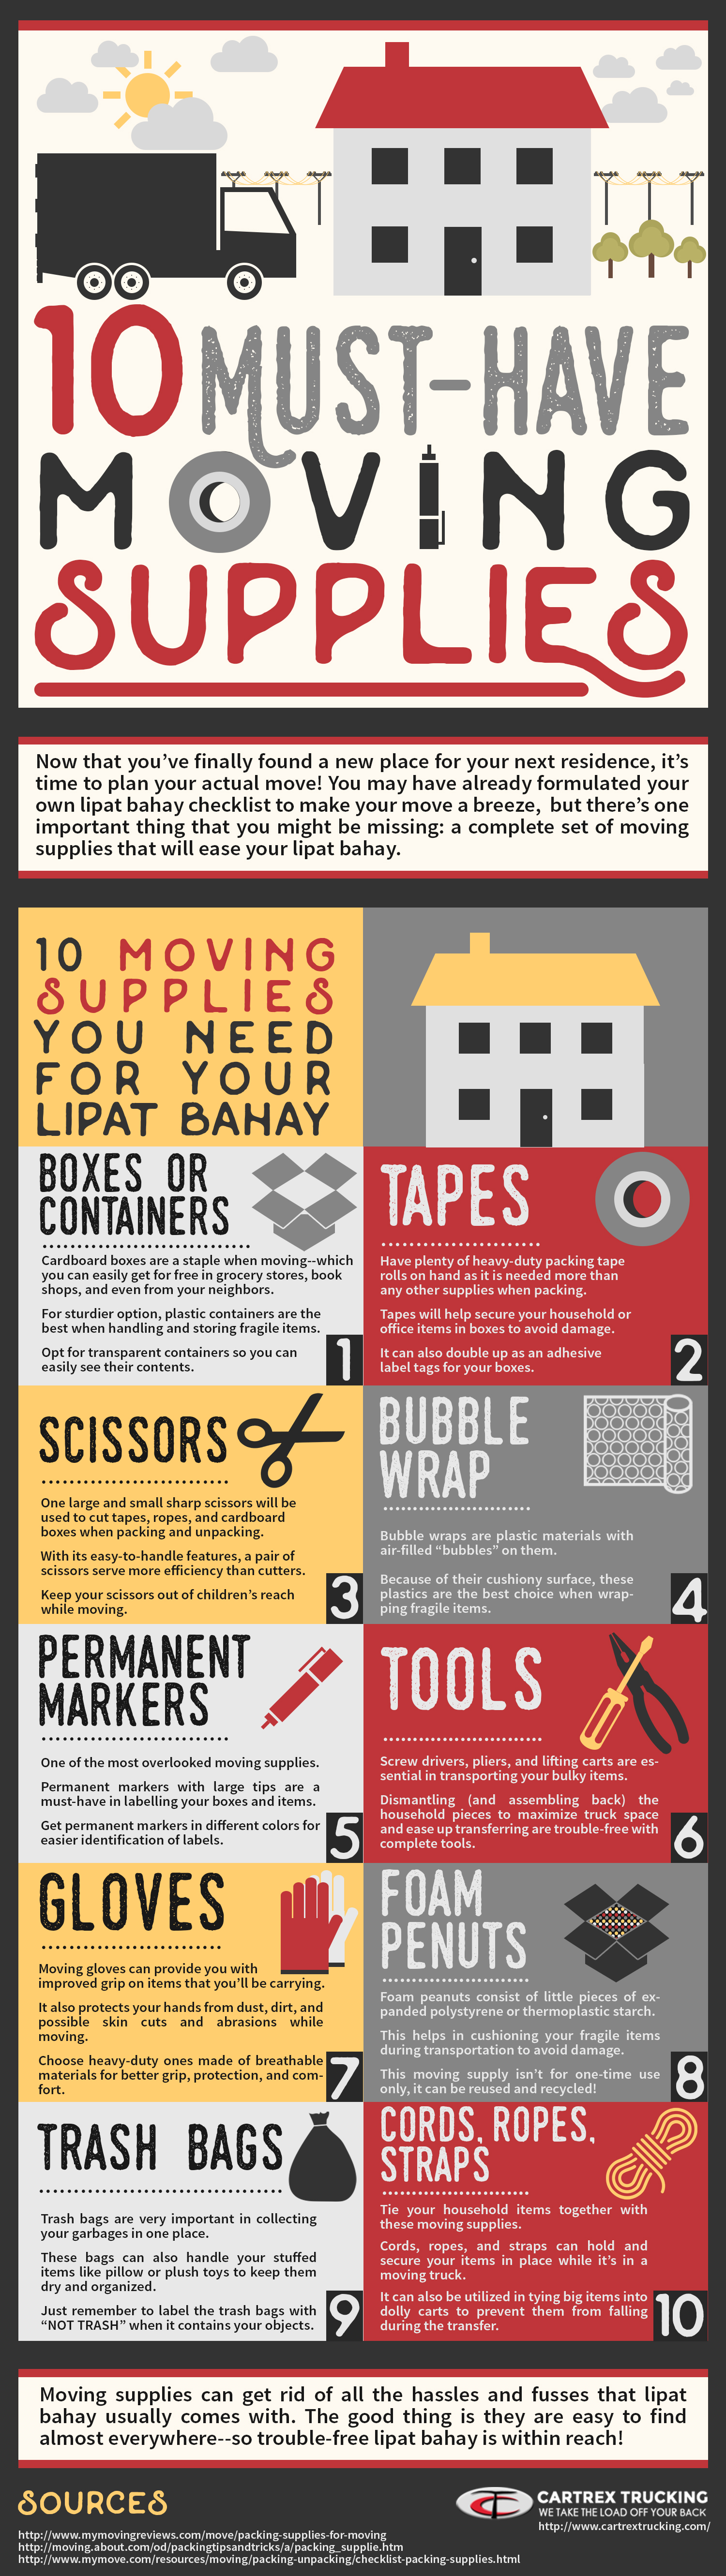 10 Must-have Moving Supplies